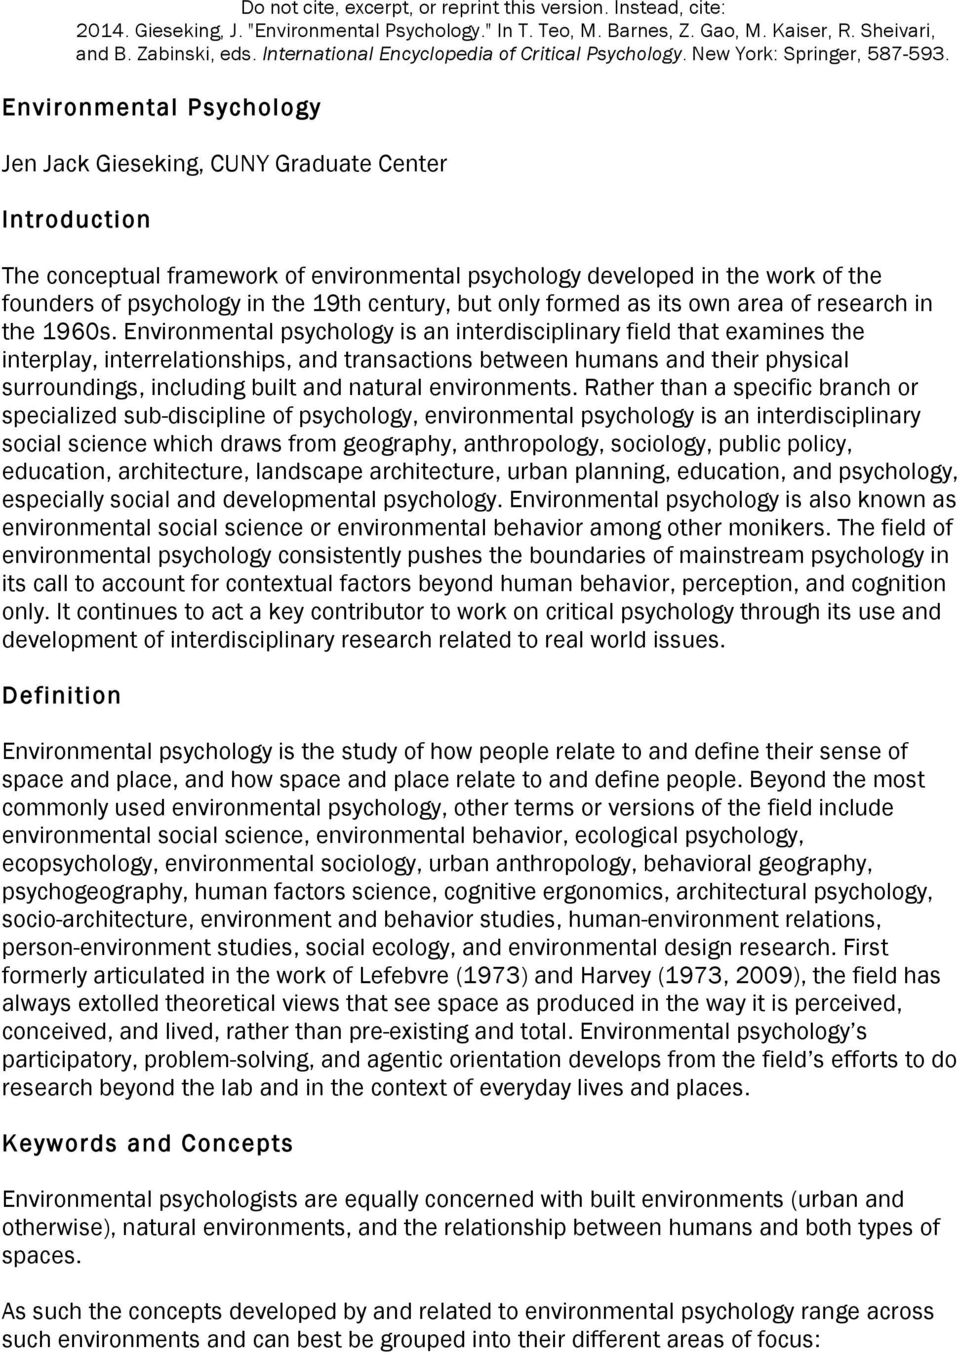 Environmental psychology is an interdisciplinary field that examines the interplay, interrelationships, and transactions between humans and their physical surroundings, including built and natural